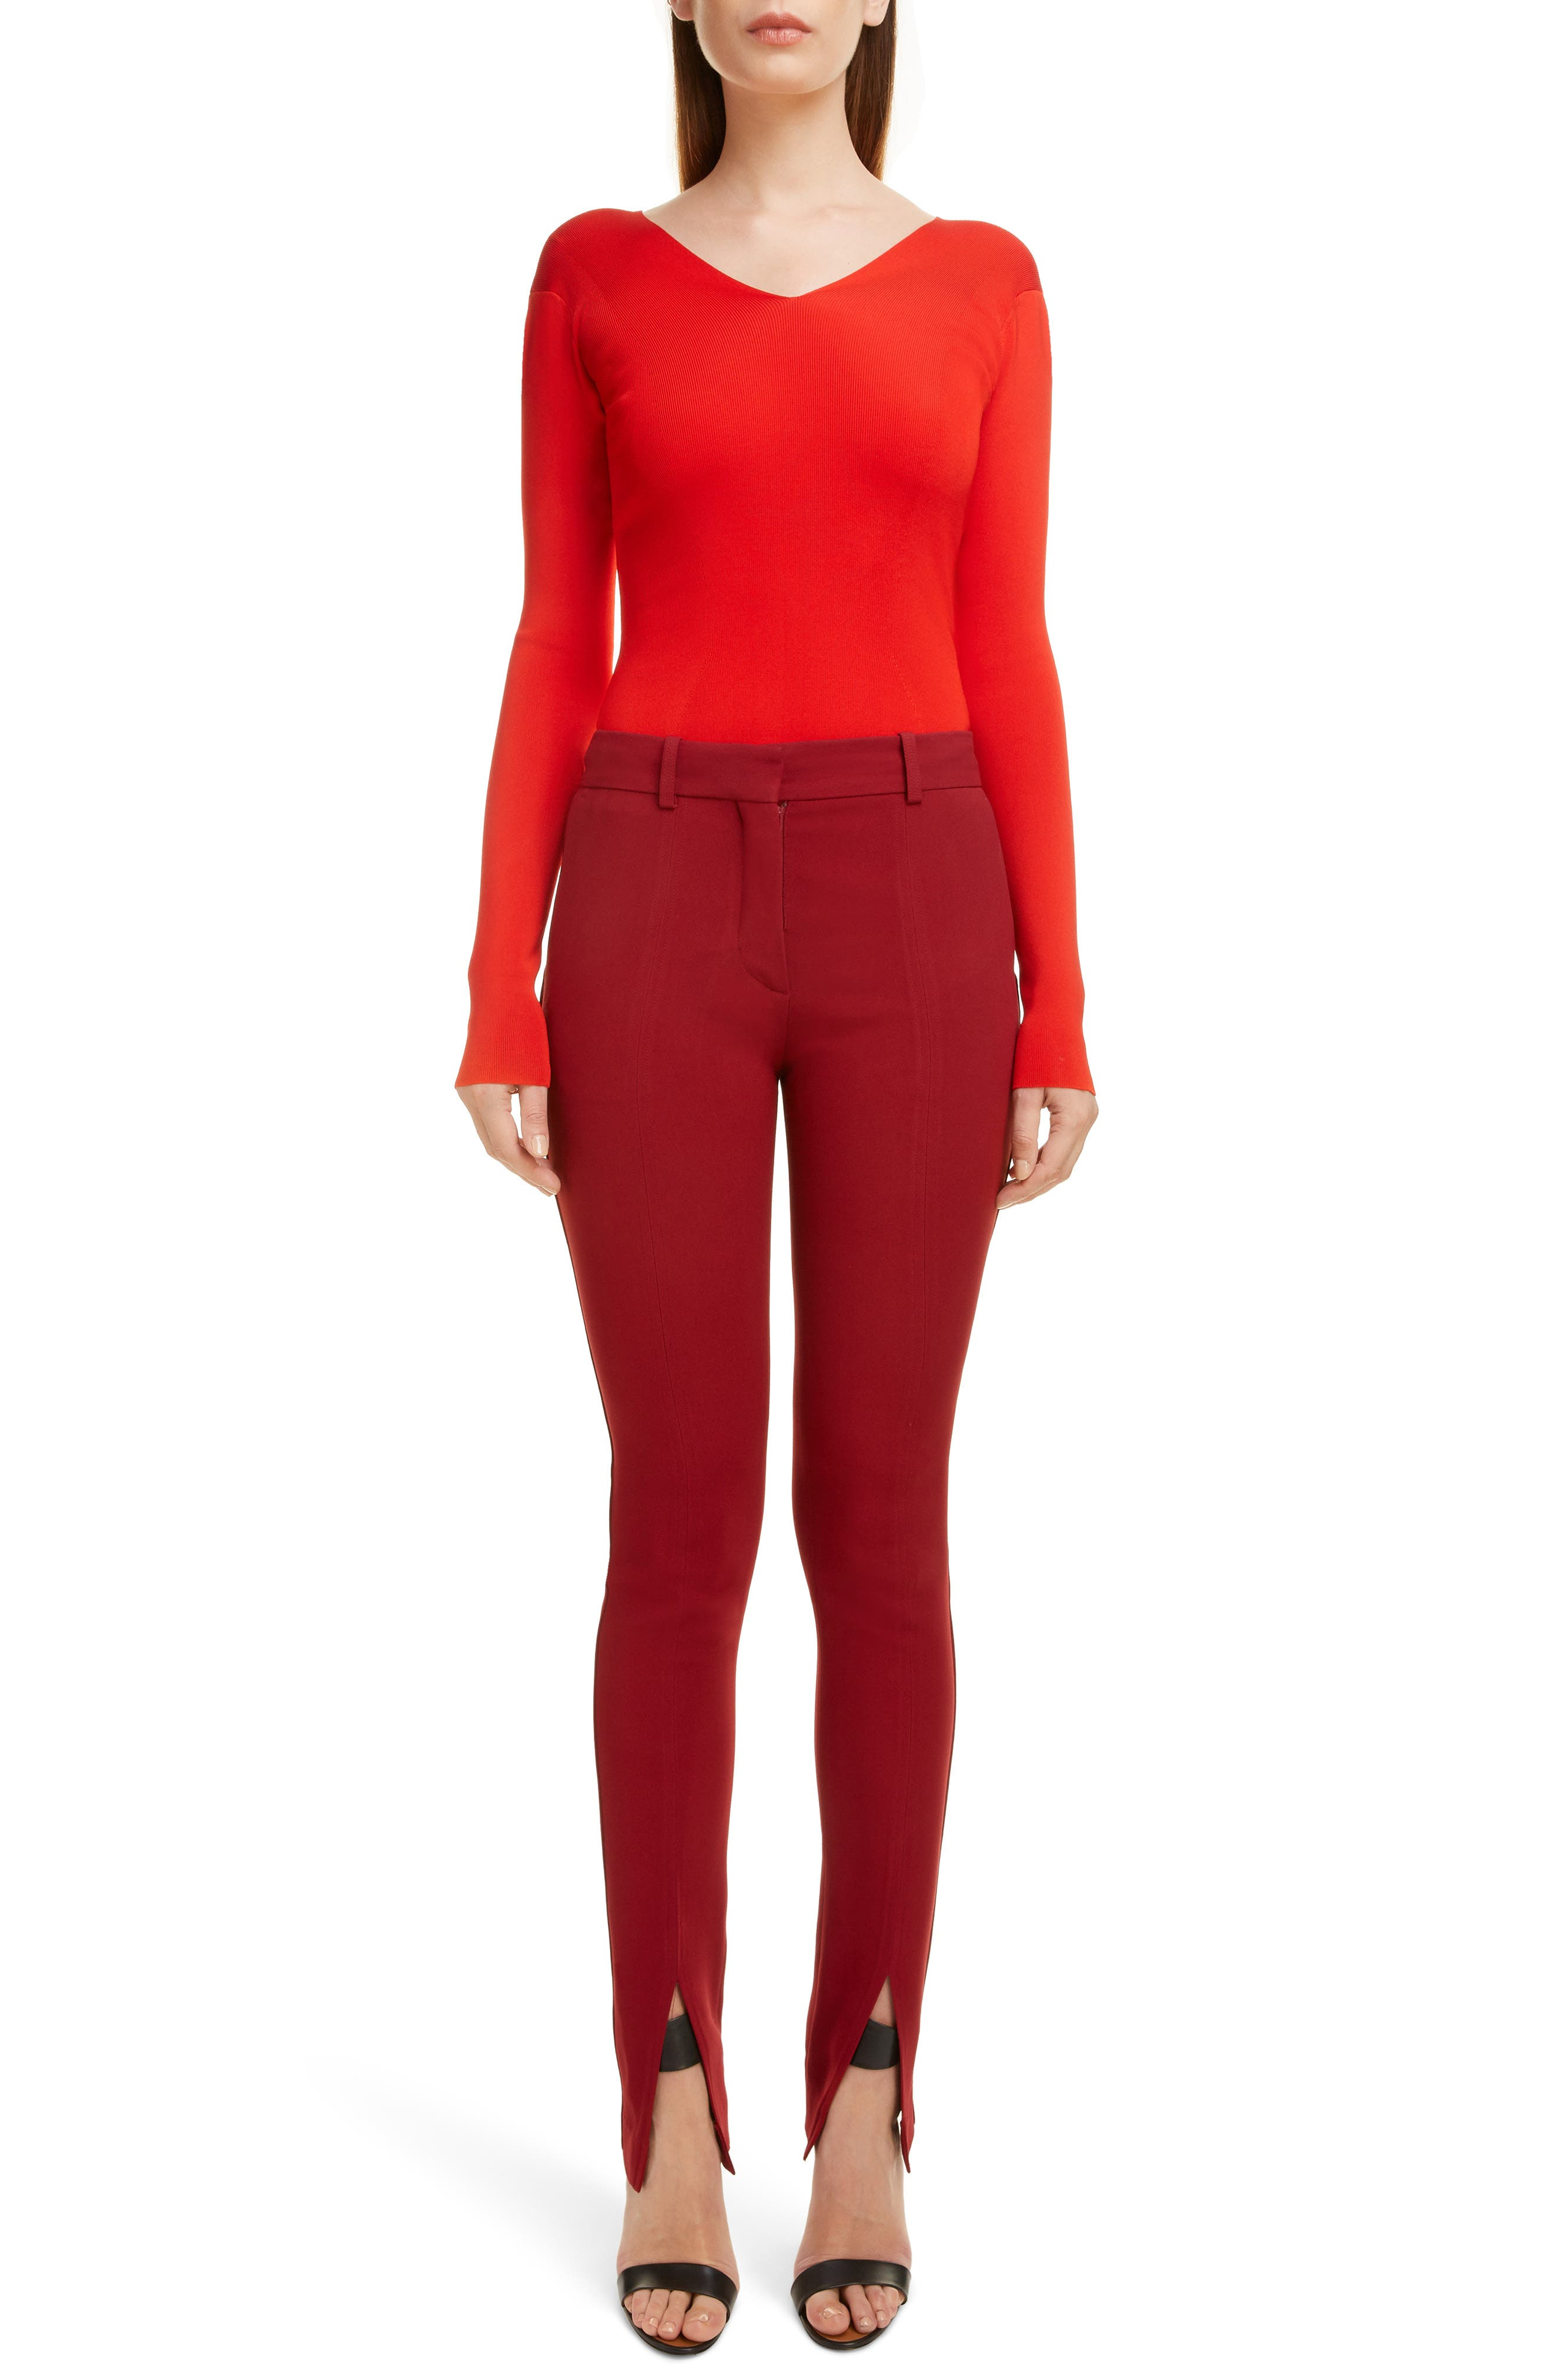 VICTORIA BECKHAM, Front Split Skinny Pants, Alternate thumbnail 6, color, BURGUNDY